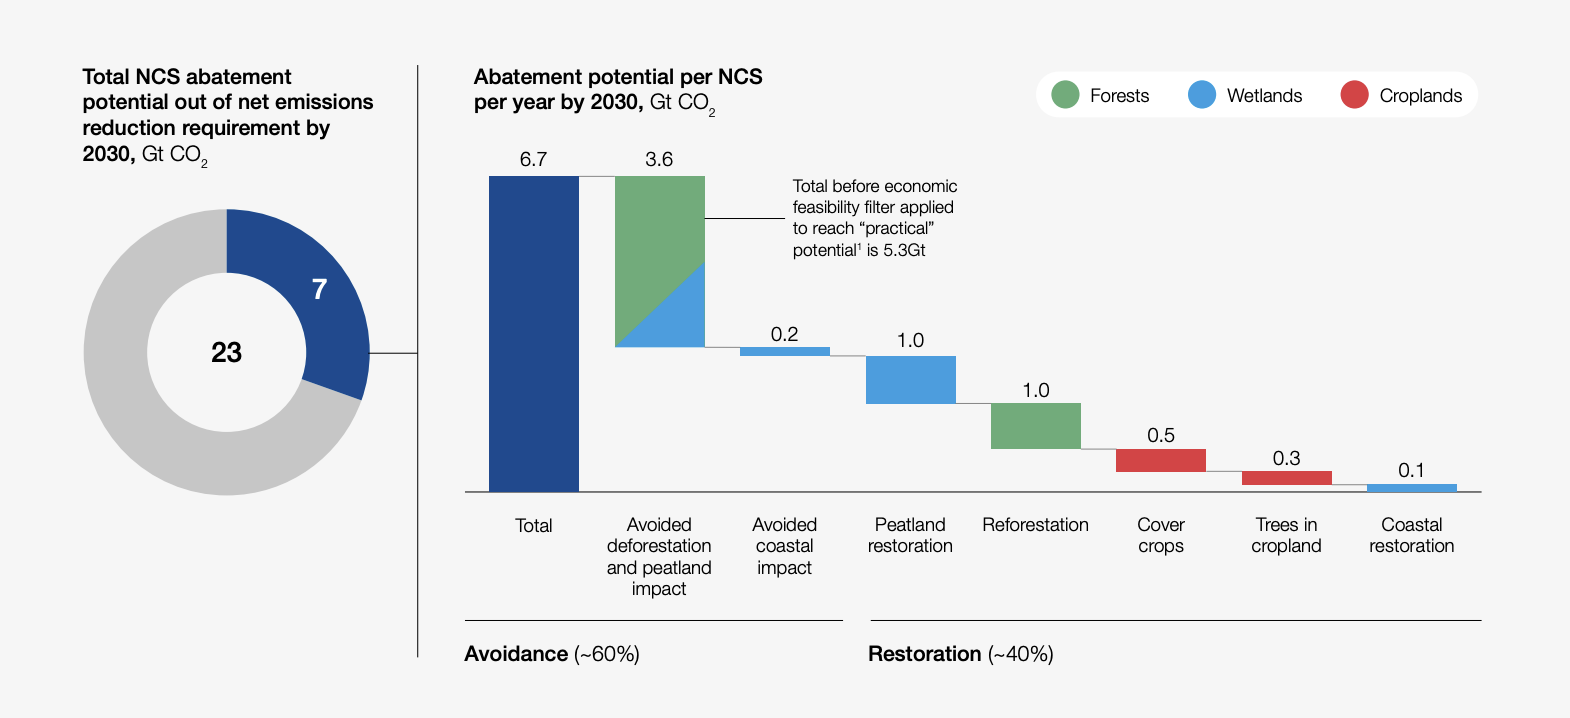 NCS could deliver up to one-third of net emission reductions required by 2030